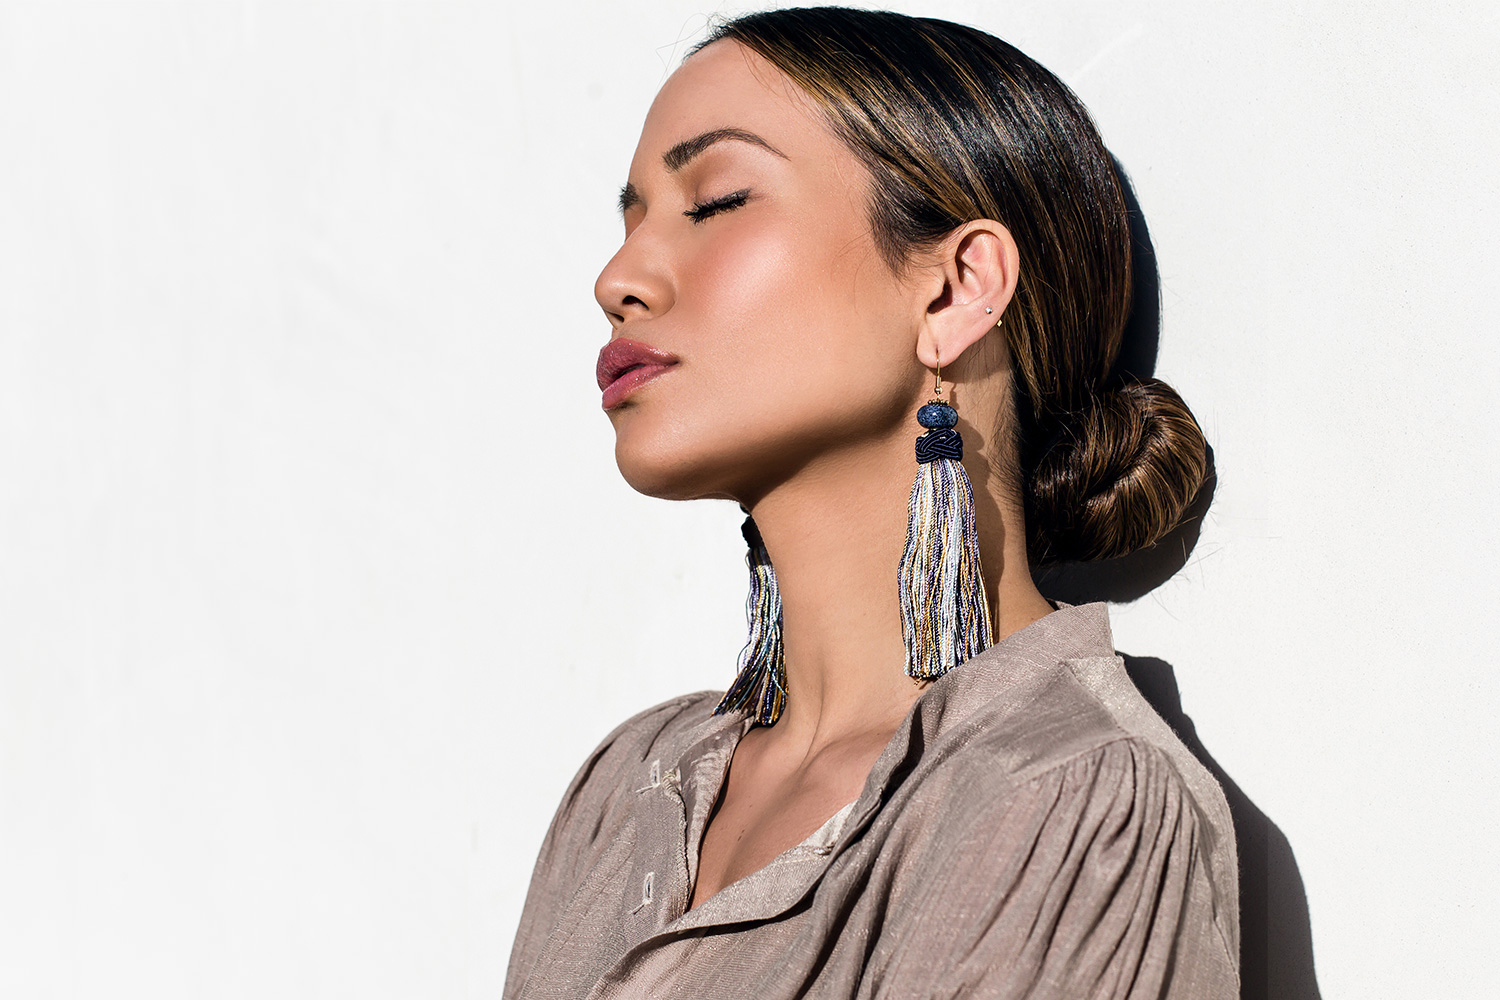 Jessi Malay wearing Misha Vaidya Tassel Earrings Statement Earrings